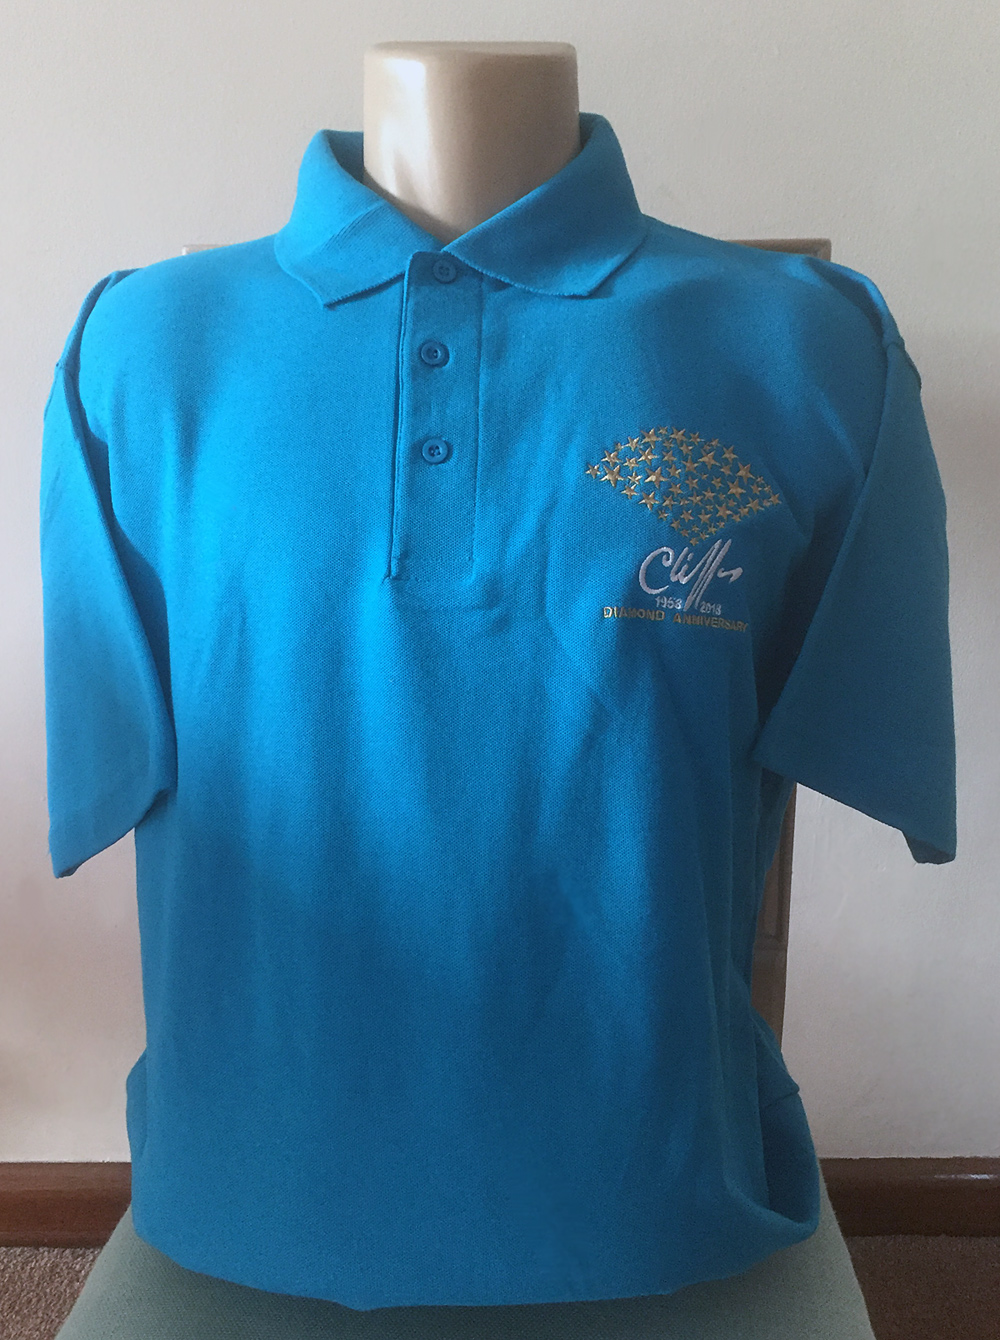 Cliff Richard polo shirt in blue with embroidered gold starburst diamond anniversary design